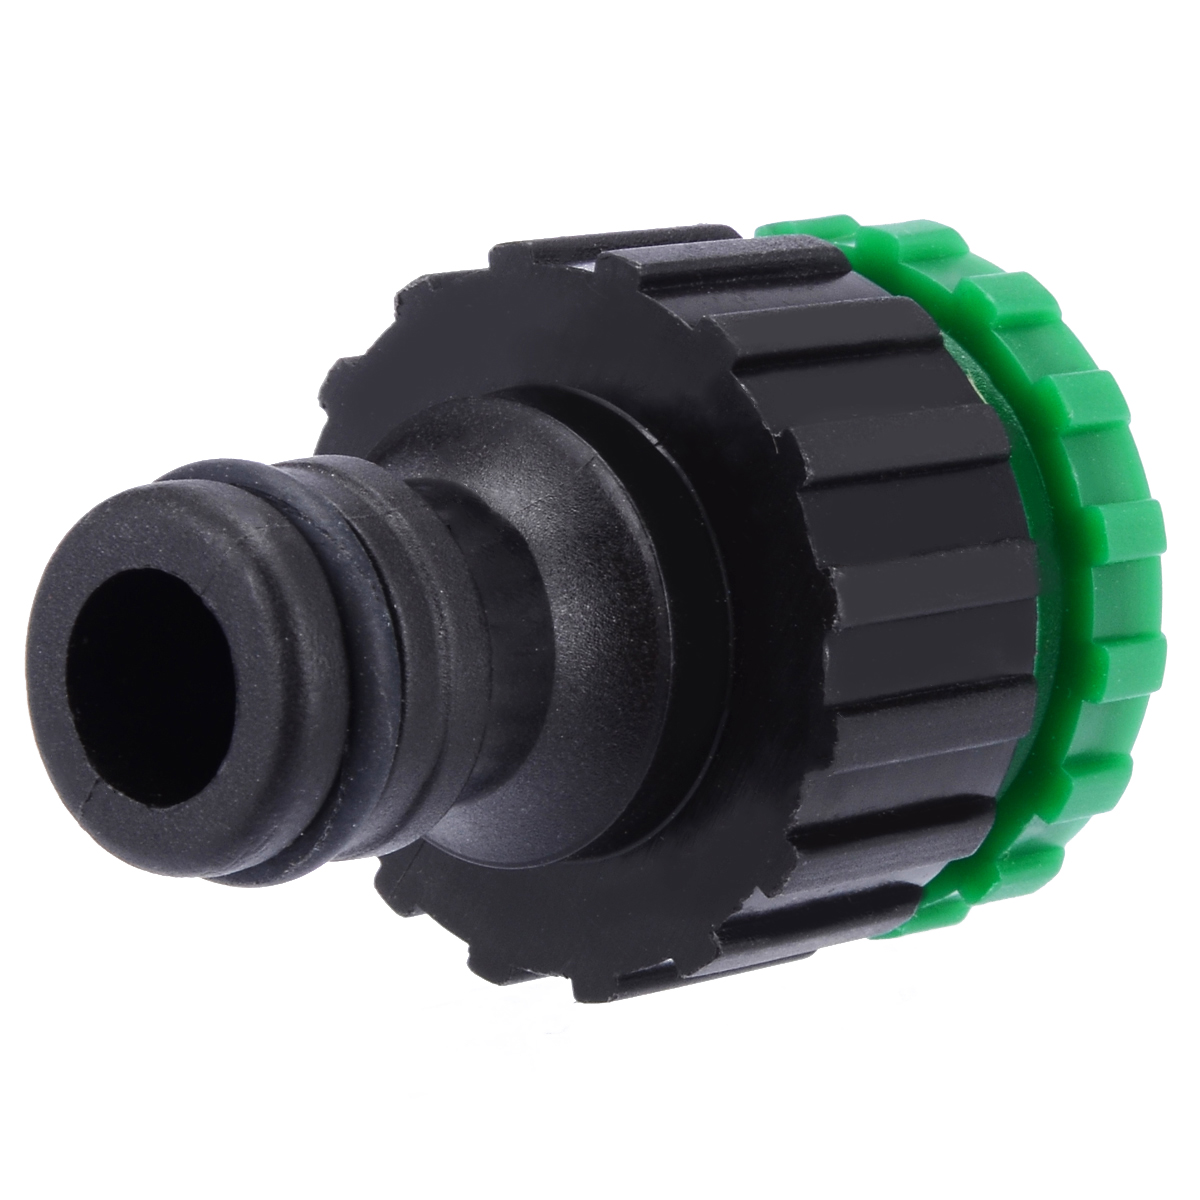 1/2 3/4 Inch Garden Tap Hose Pipe Connector Adaptor Pressure Washers Tap Water Pipe Connector Mayitr